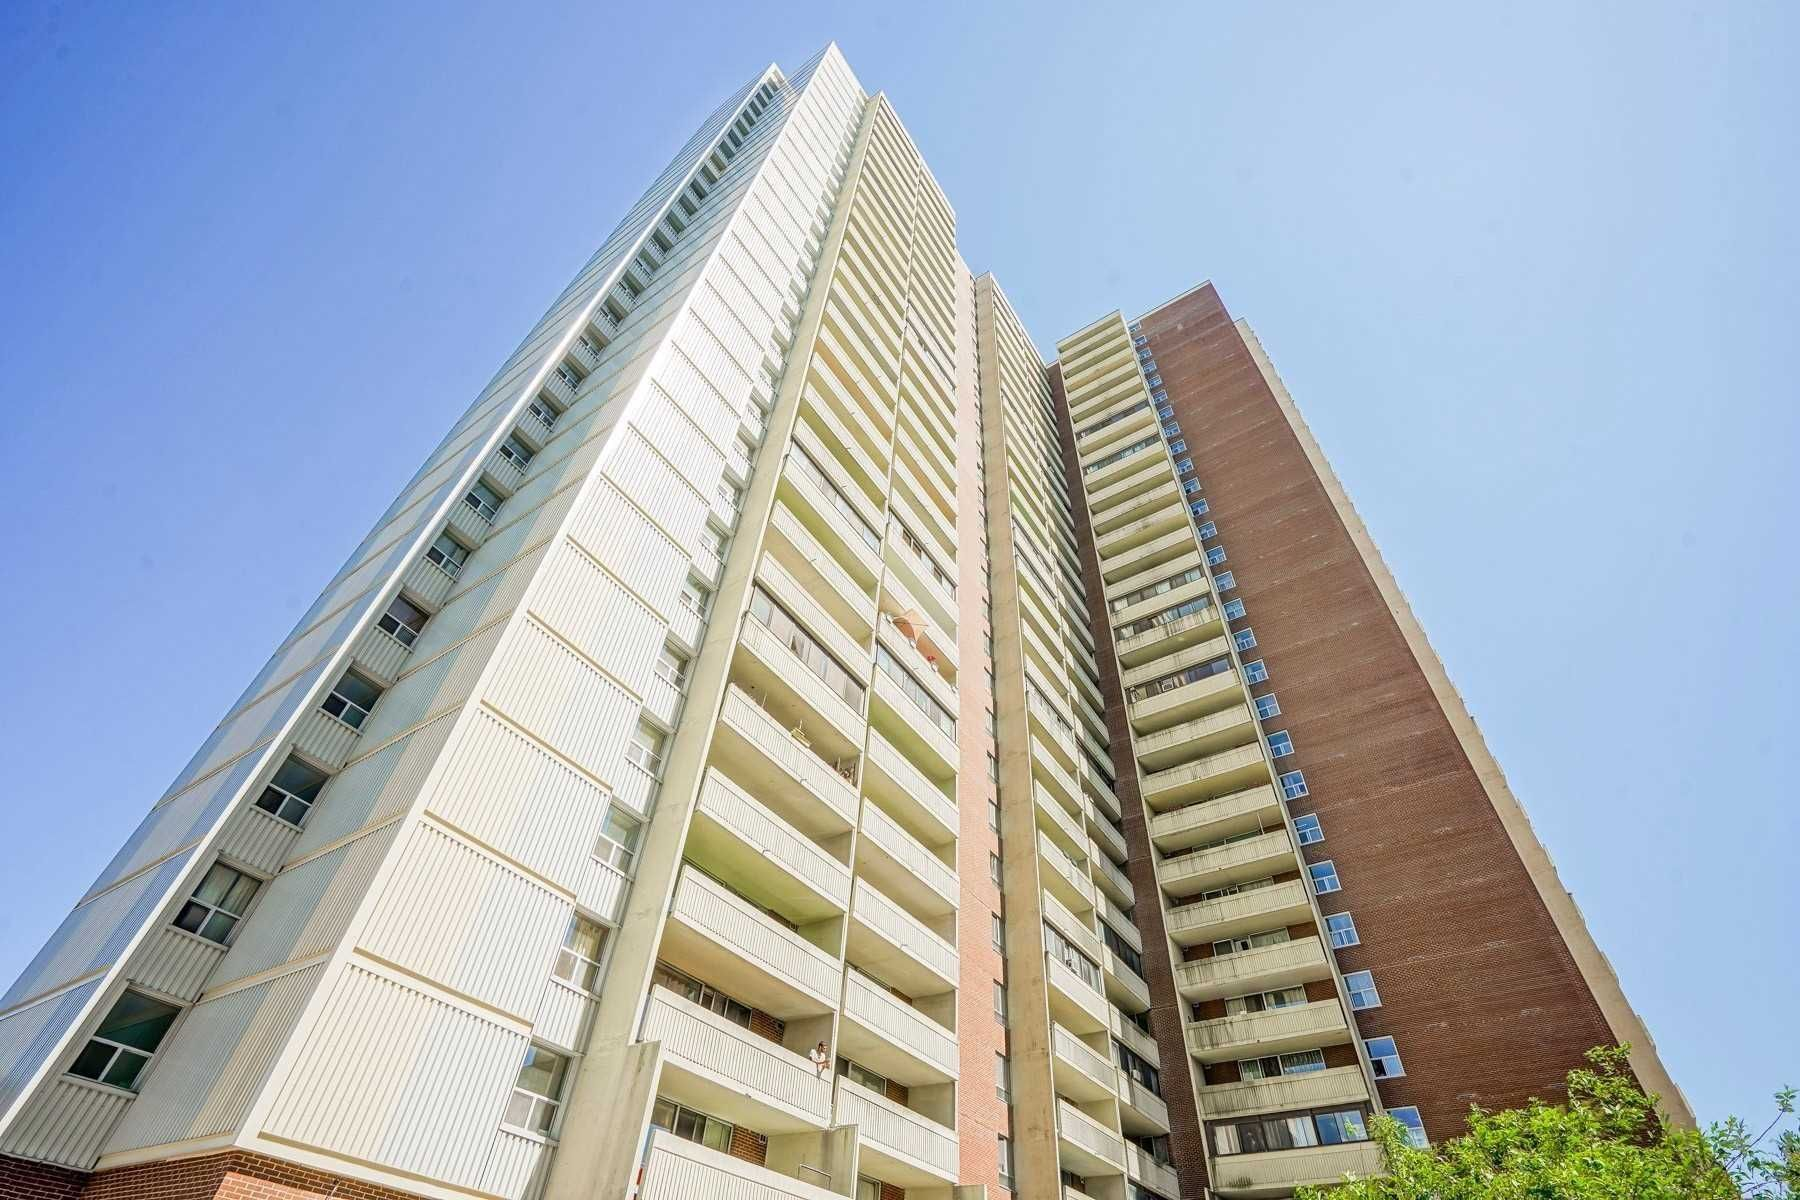 5 Massey Sq, unit 1201 for sale in Toronto - image #2